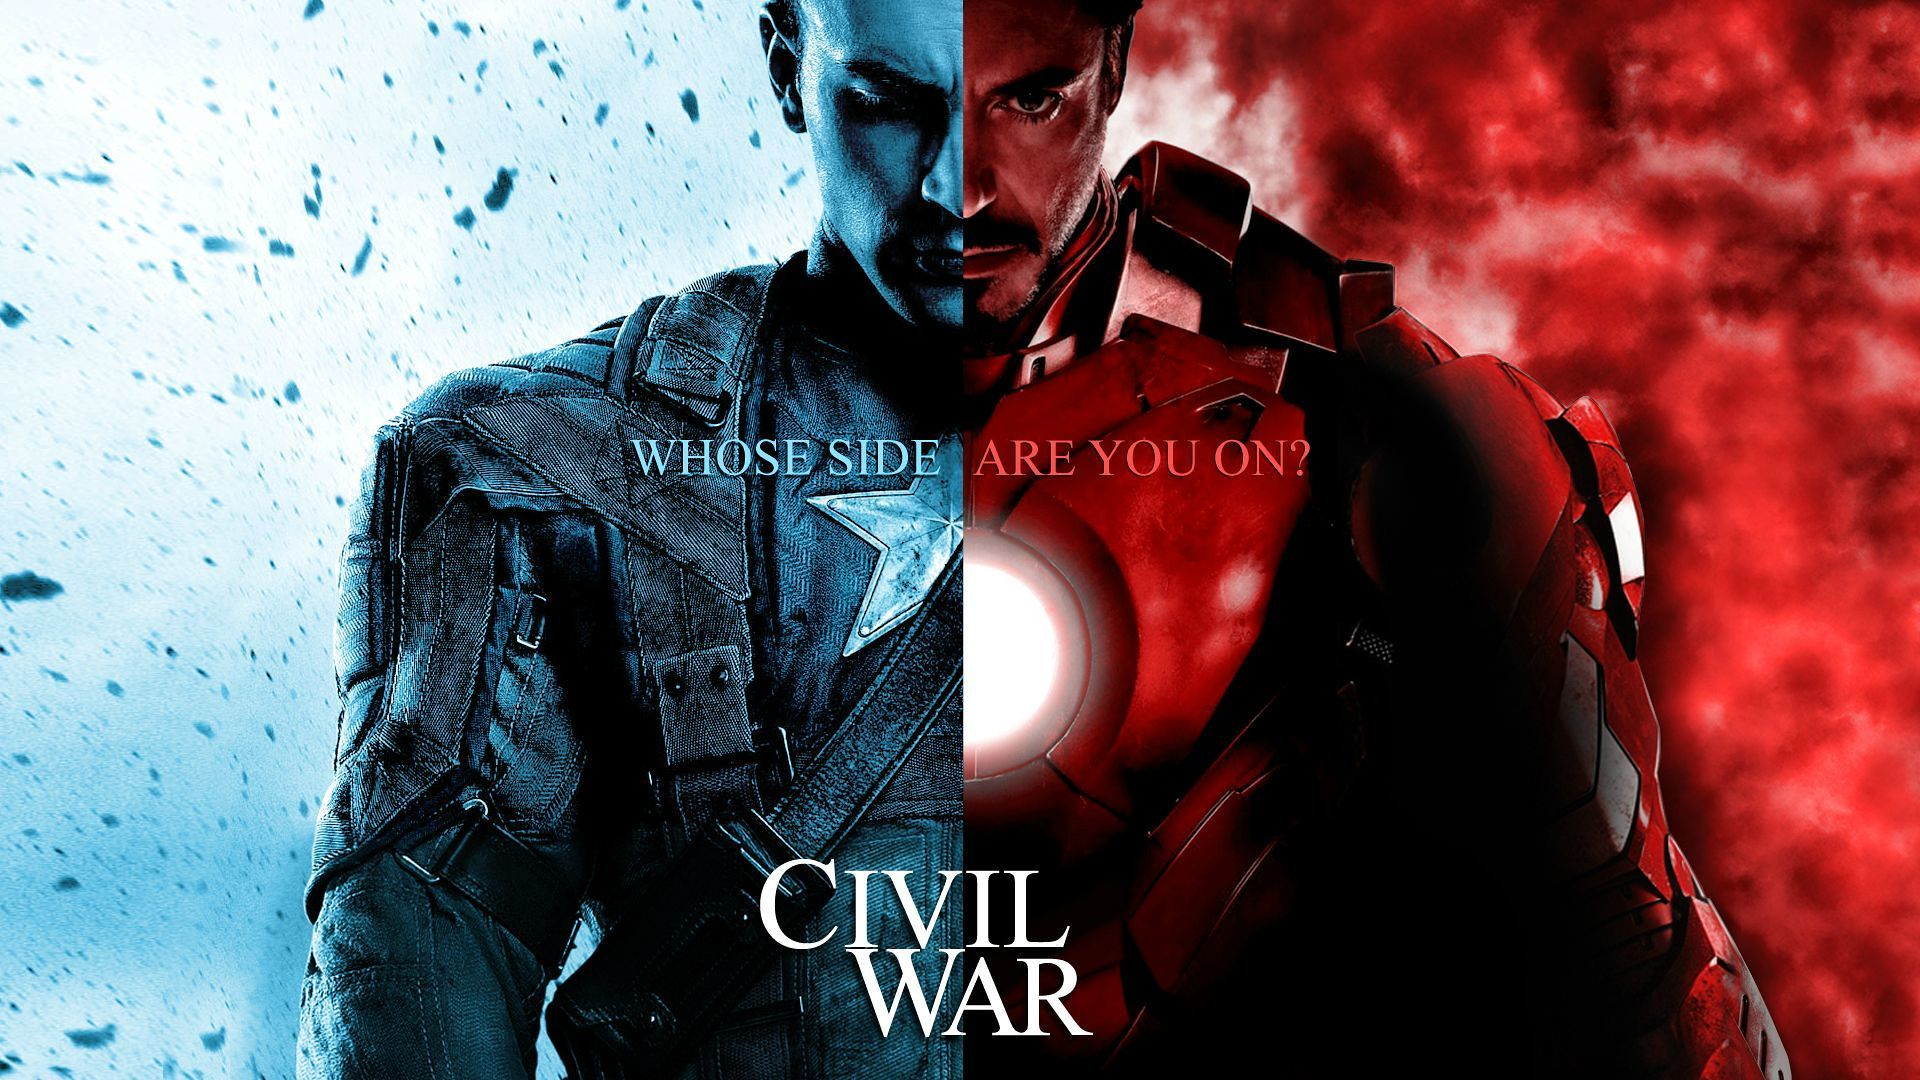 10 Things About Captain America: Civil War You Didn't Know